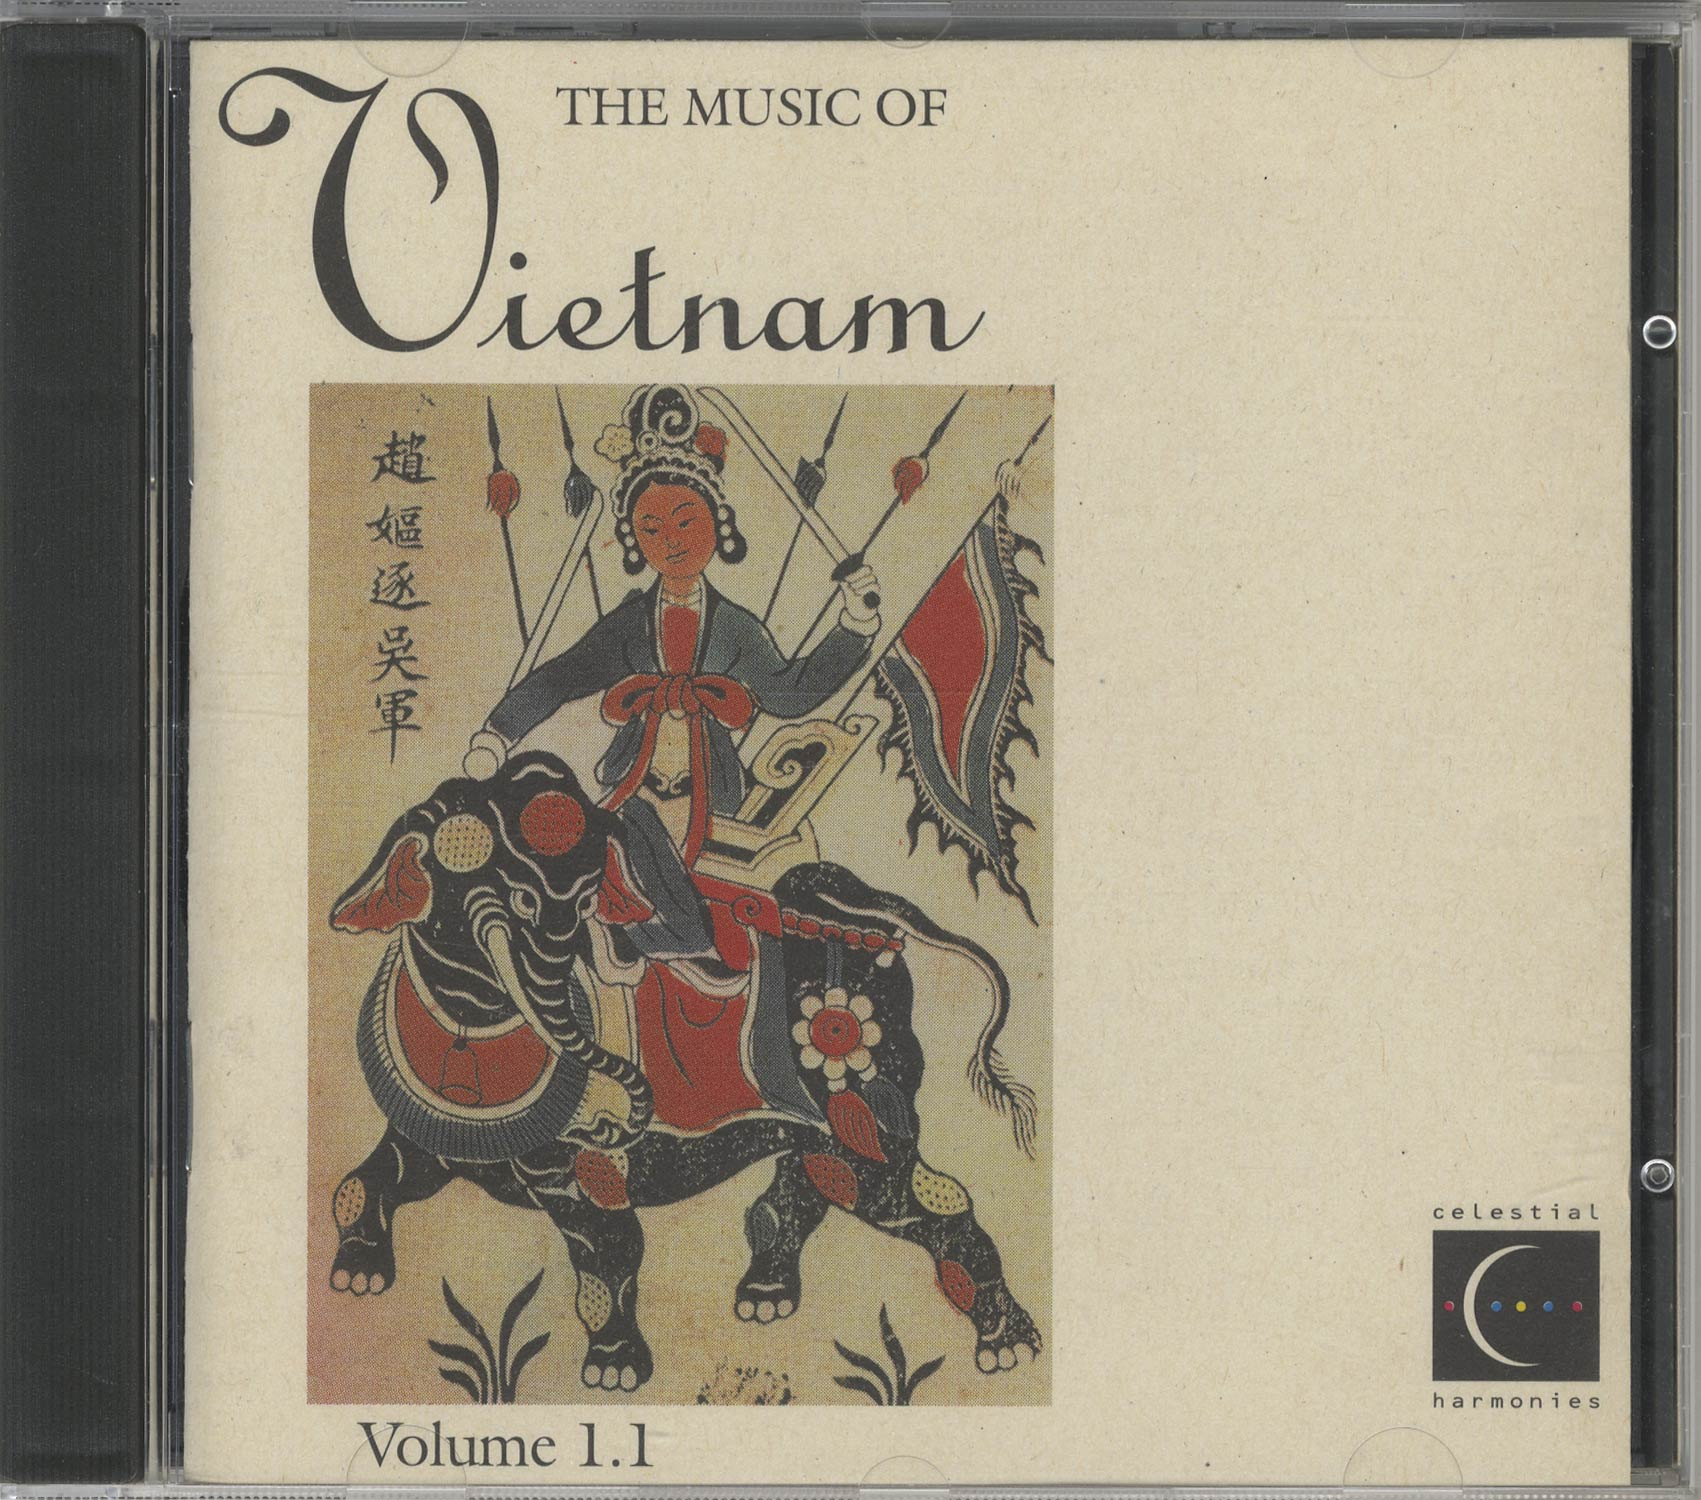 The Music of Vietnam 3 CD Boxed Set[image3]